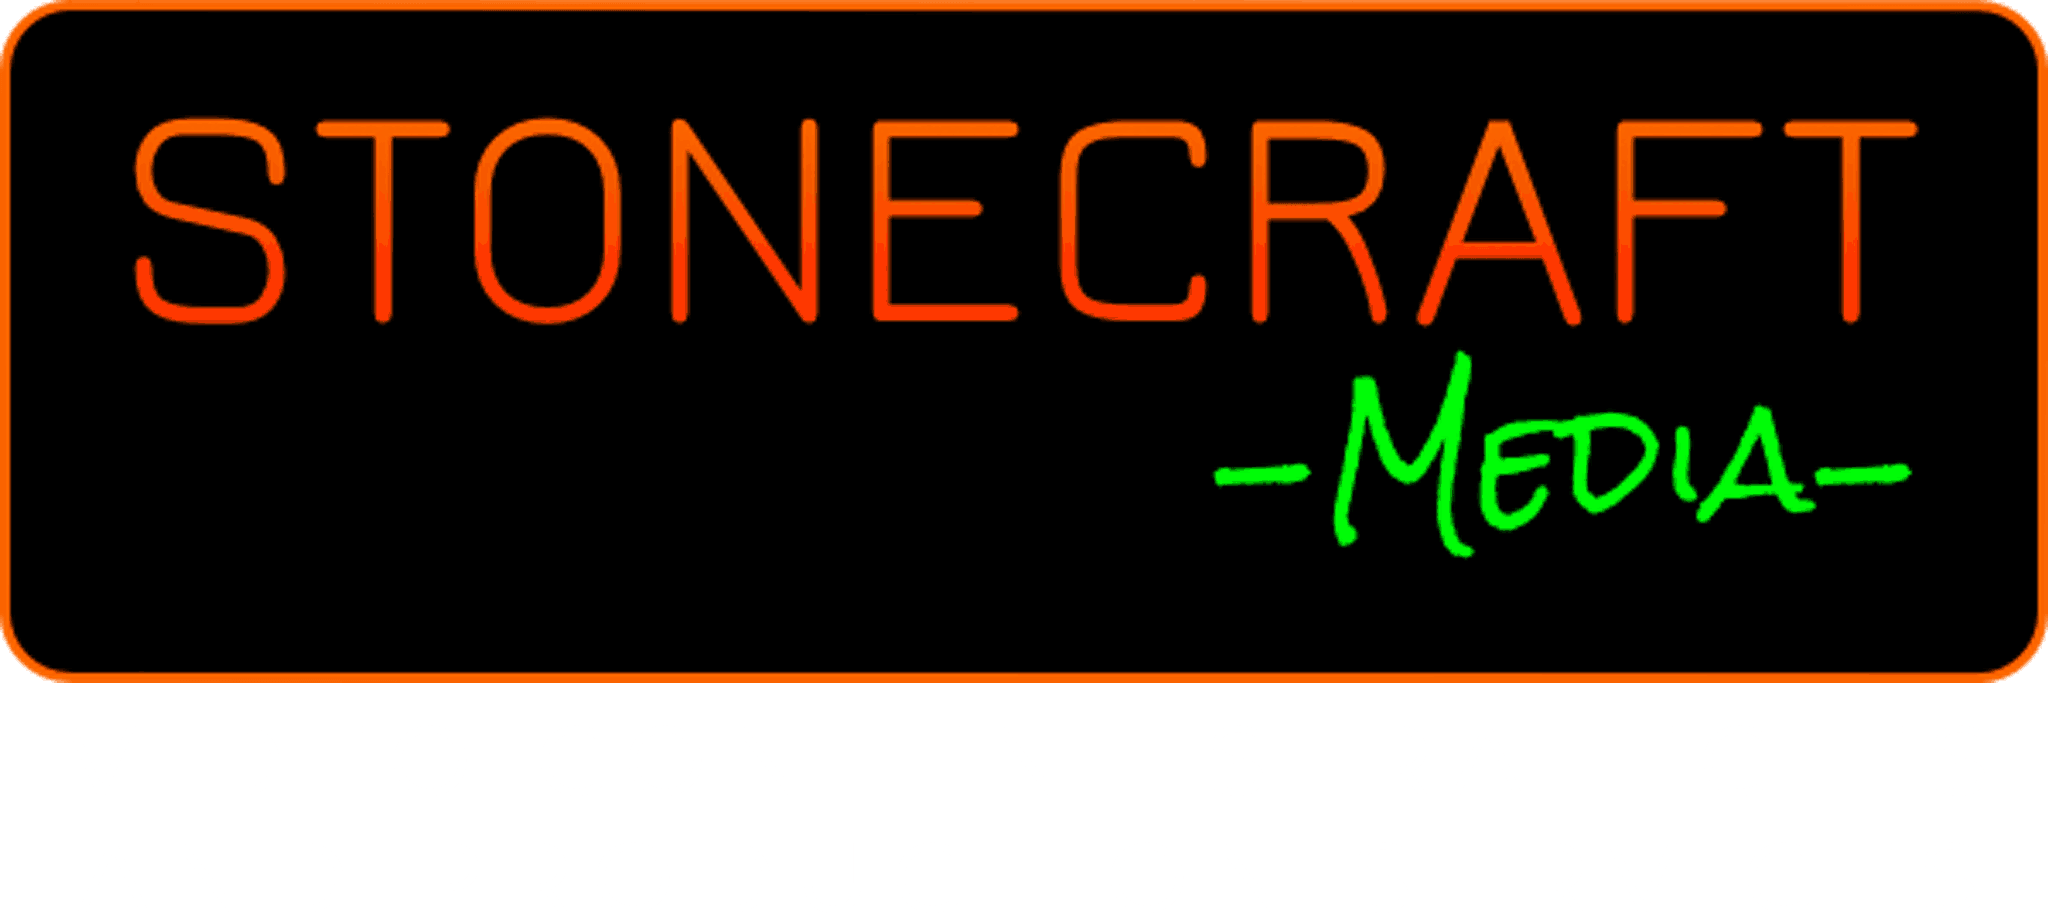 Stonecraft Media Video Content Strategies and Production Services